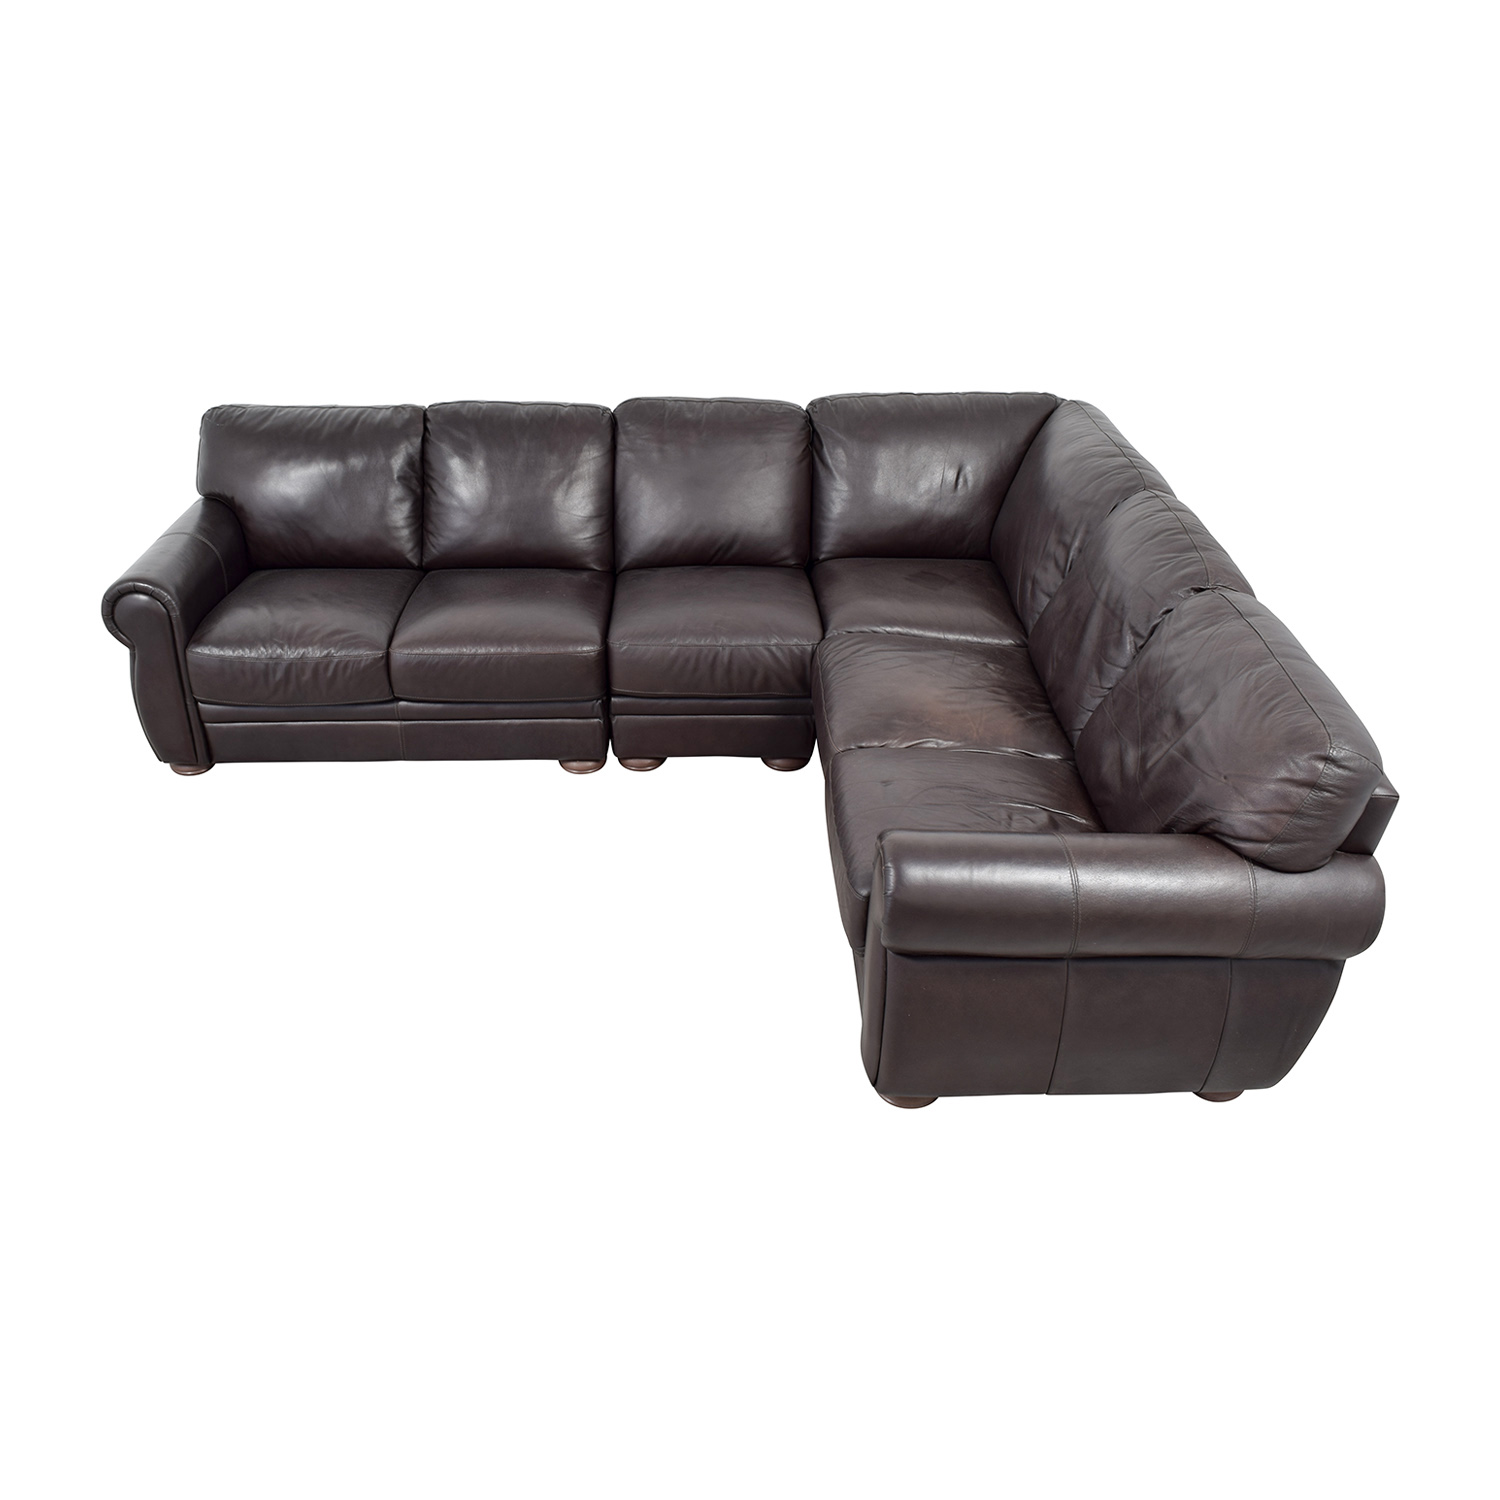 buy Raymour & Flanigan Marsala Brown Leather L-Shaped Sectional Raymour & Flanigan